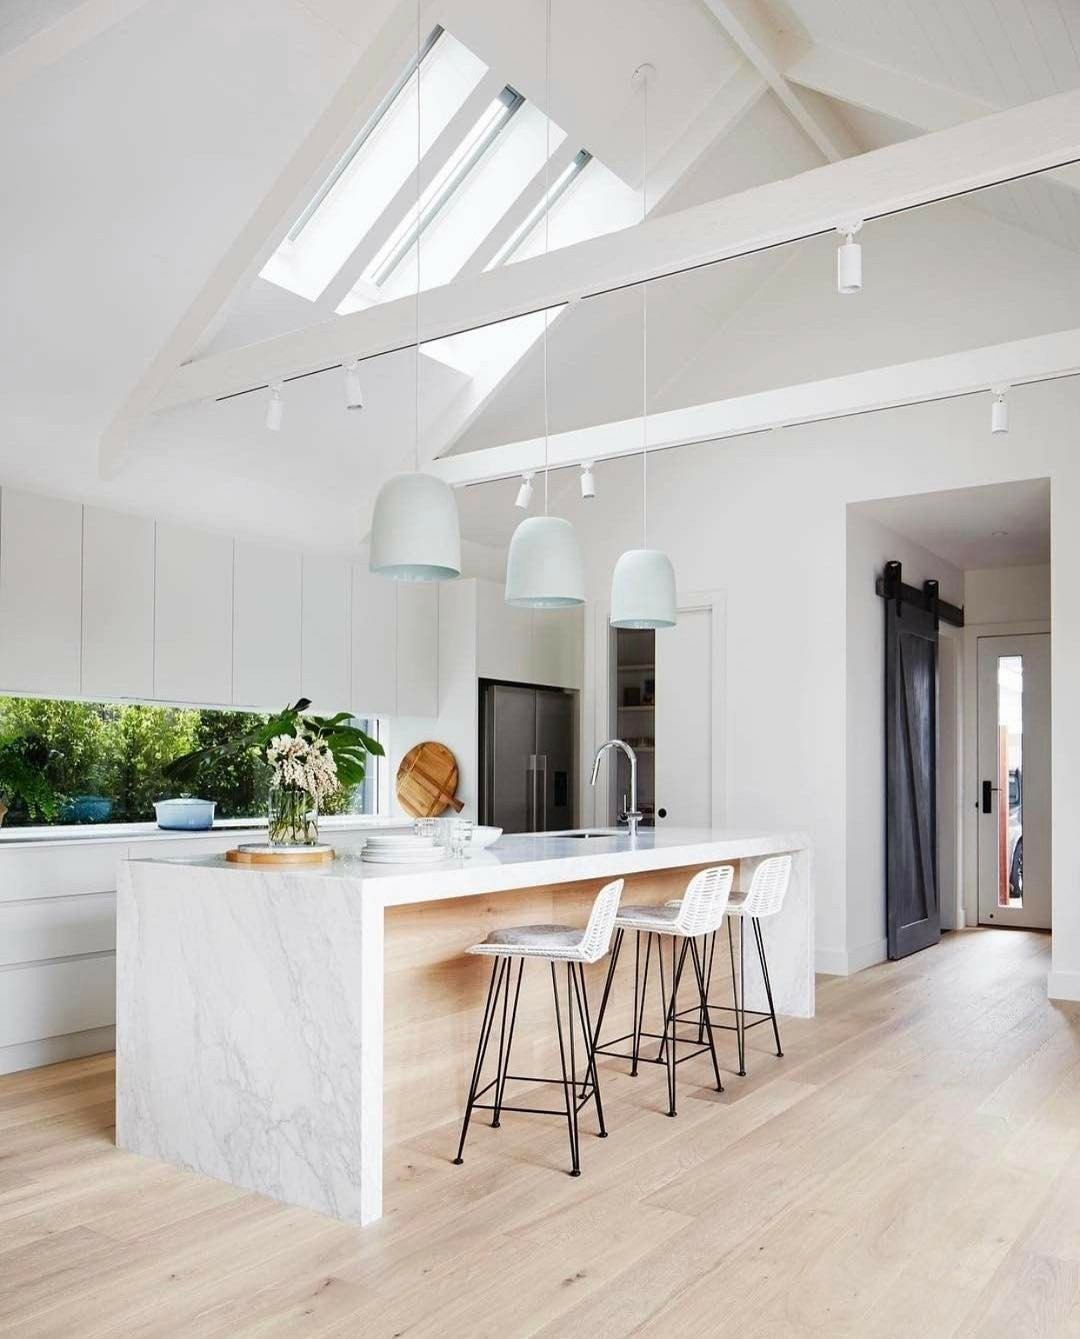 Kitchen Island Lighting High Ceilings: Kitchen Lighting Design, All White